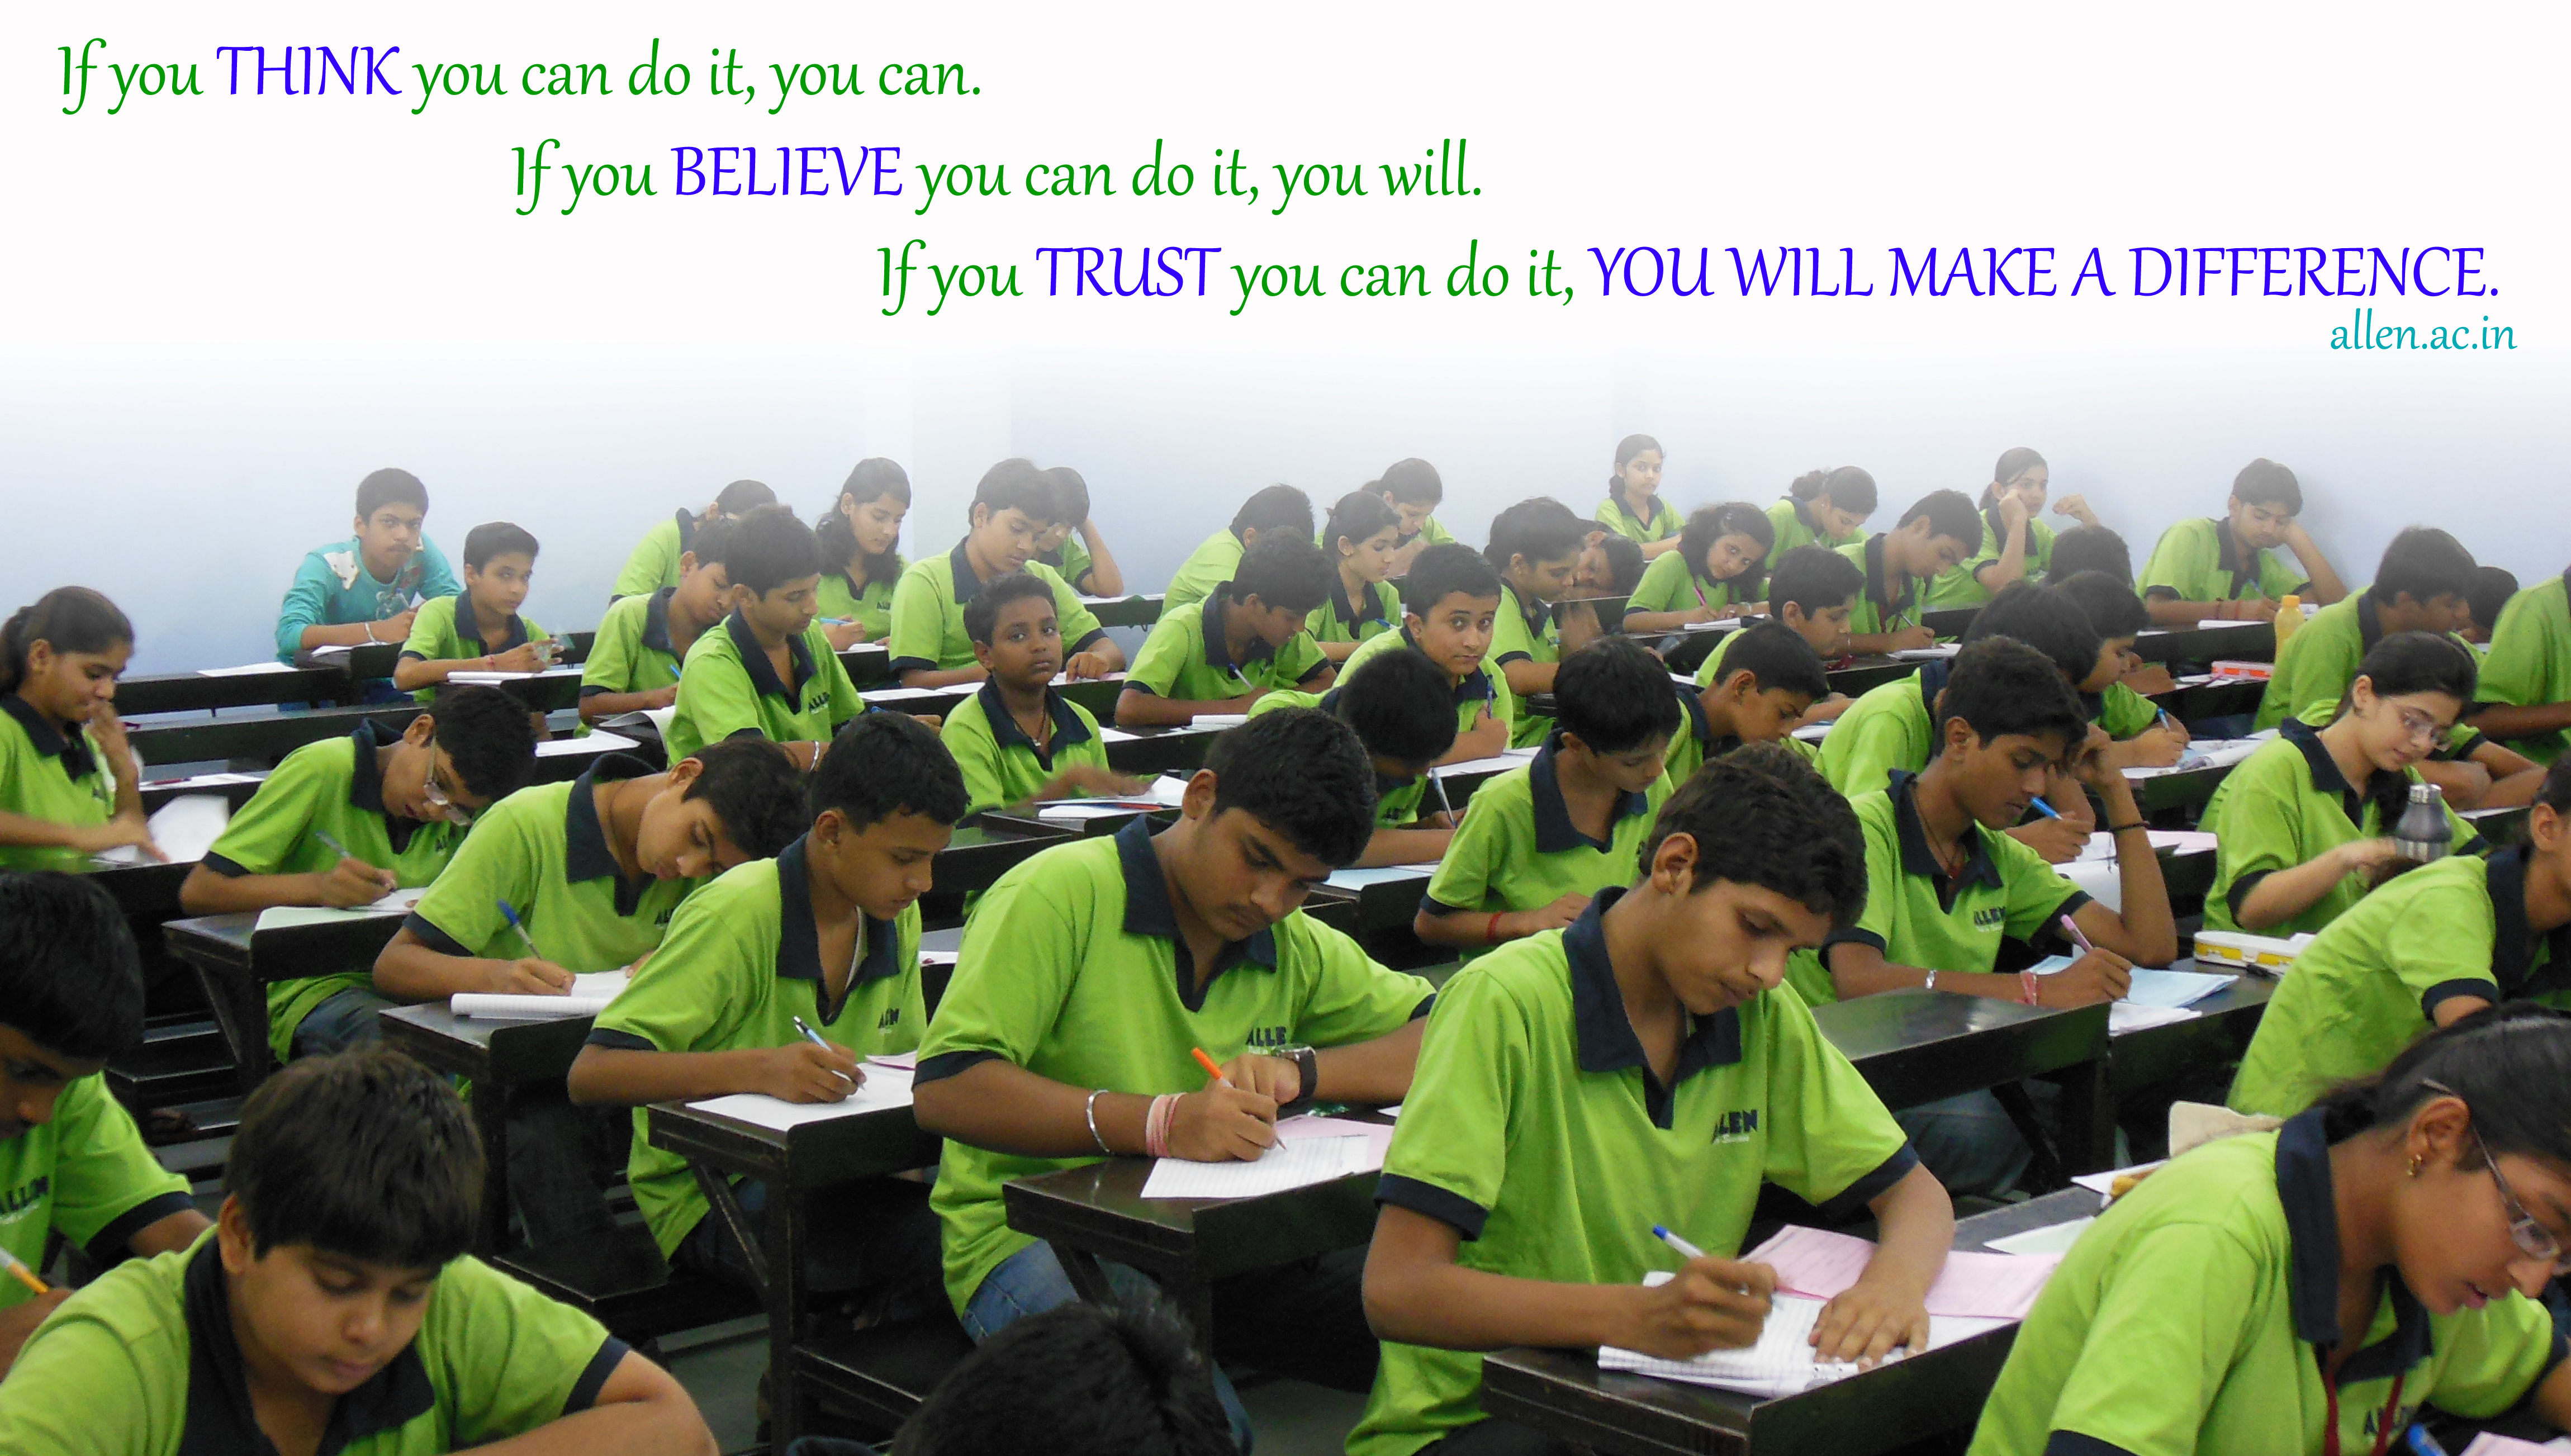 Best Wishes for Summative Assessment 1